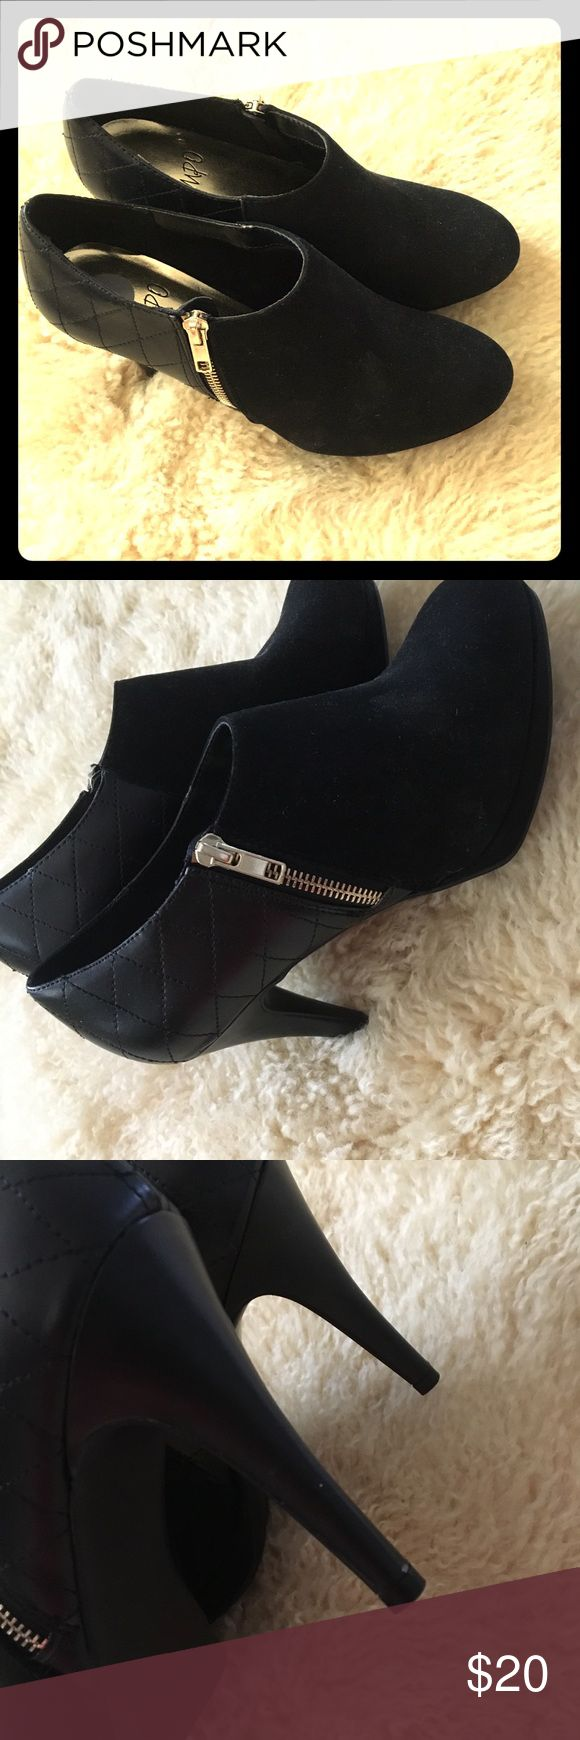 Black velvet high hells ankle shoes brand new Never use them Not in original box  Fits really nice use them with tights jeans, leggings, skirts.  If you like them just make a decent offer thank you impo Shoes Ankle Boots & Booties